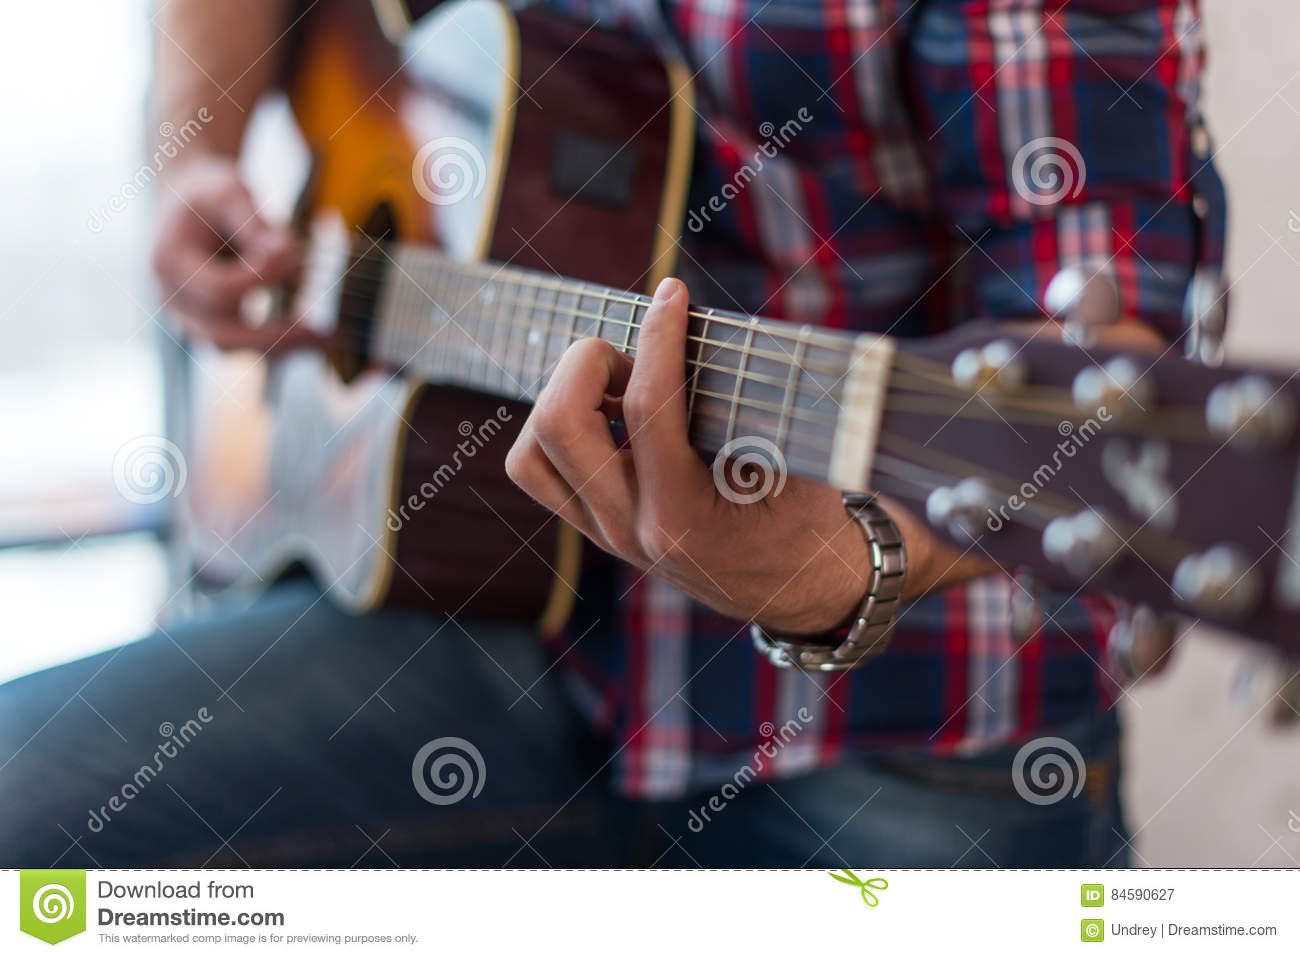 Accord Chord Close Up Of Mens Hands Playing An Acoustic Guitar